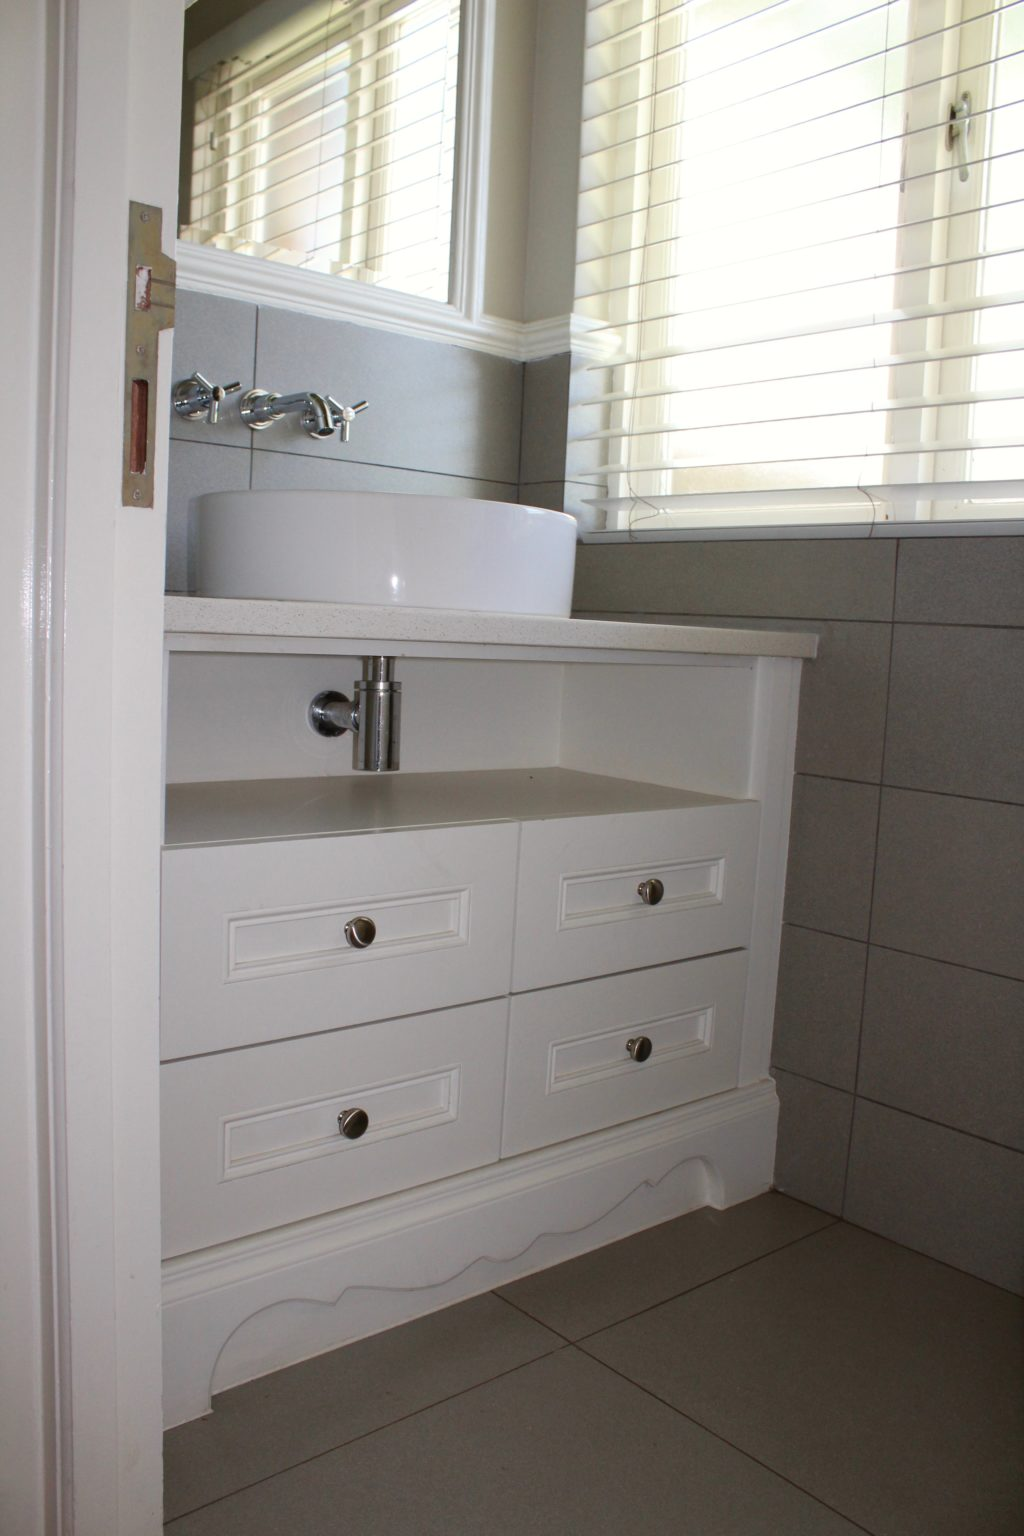 Bathroom vanity cupboard and basin by Woodhouse Kitchens and Cupboards